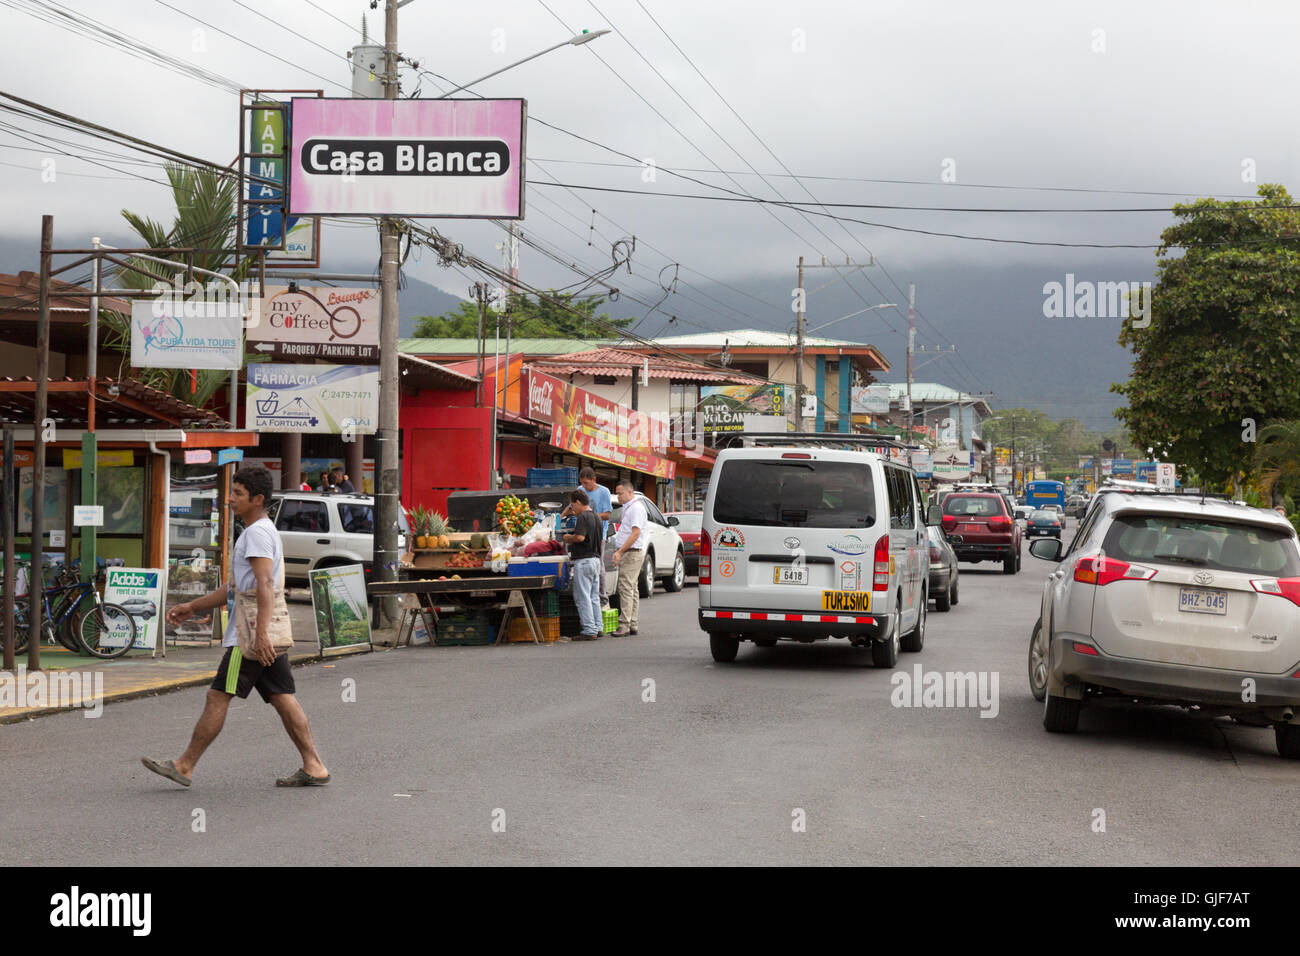 Street scene, the town of La Fortuna, Arenal, Costa Rica, Central America - Stock Image